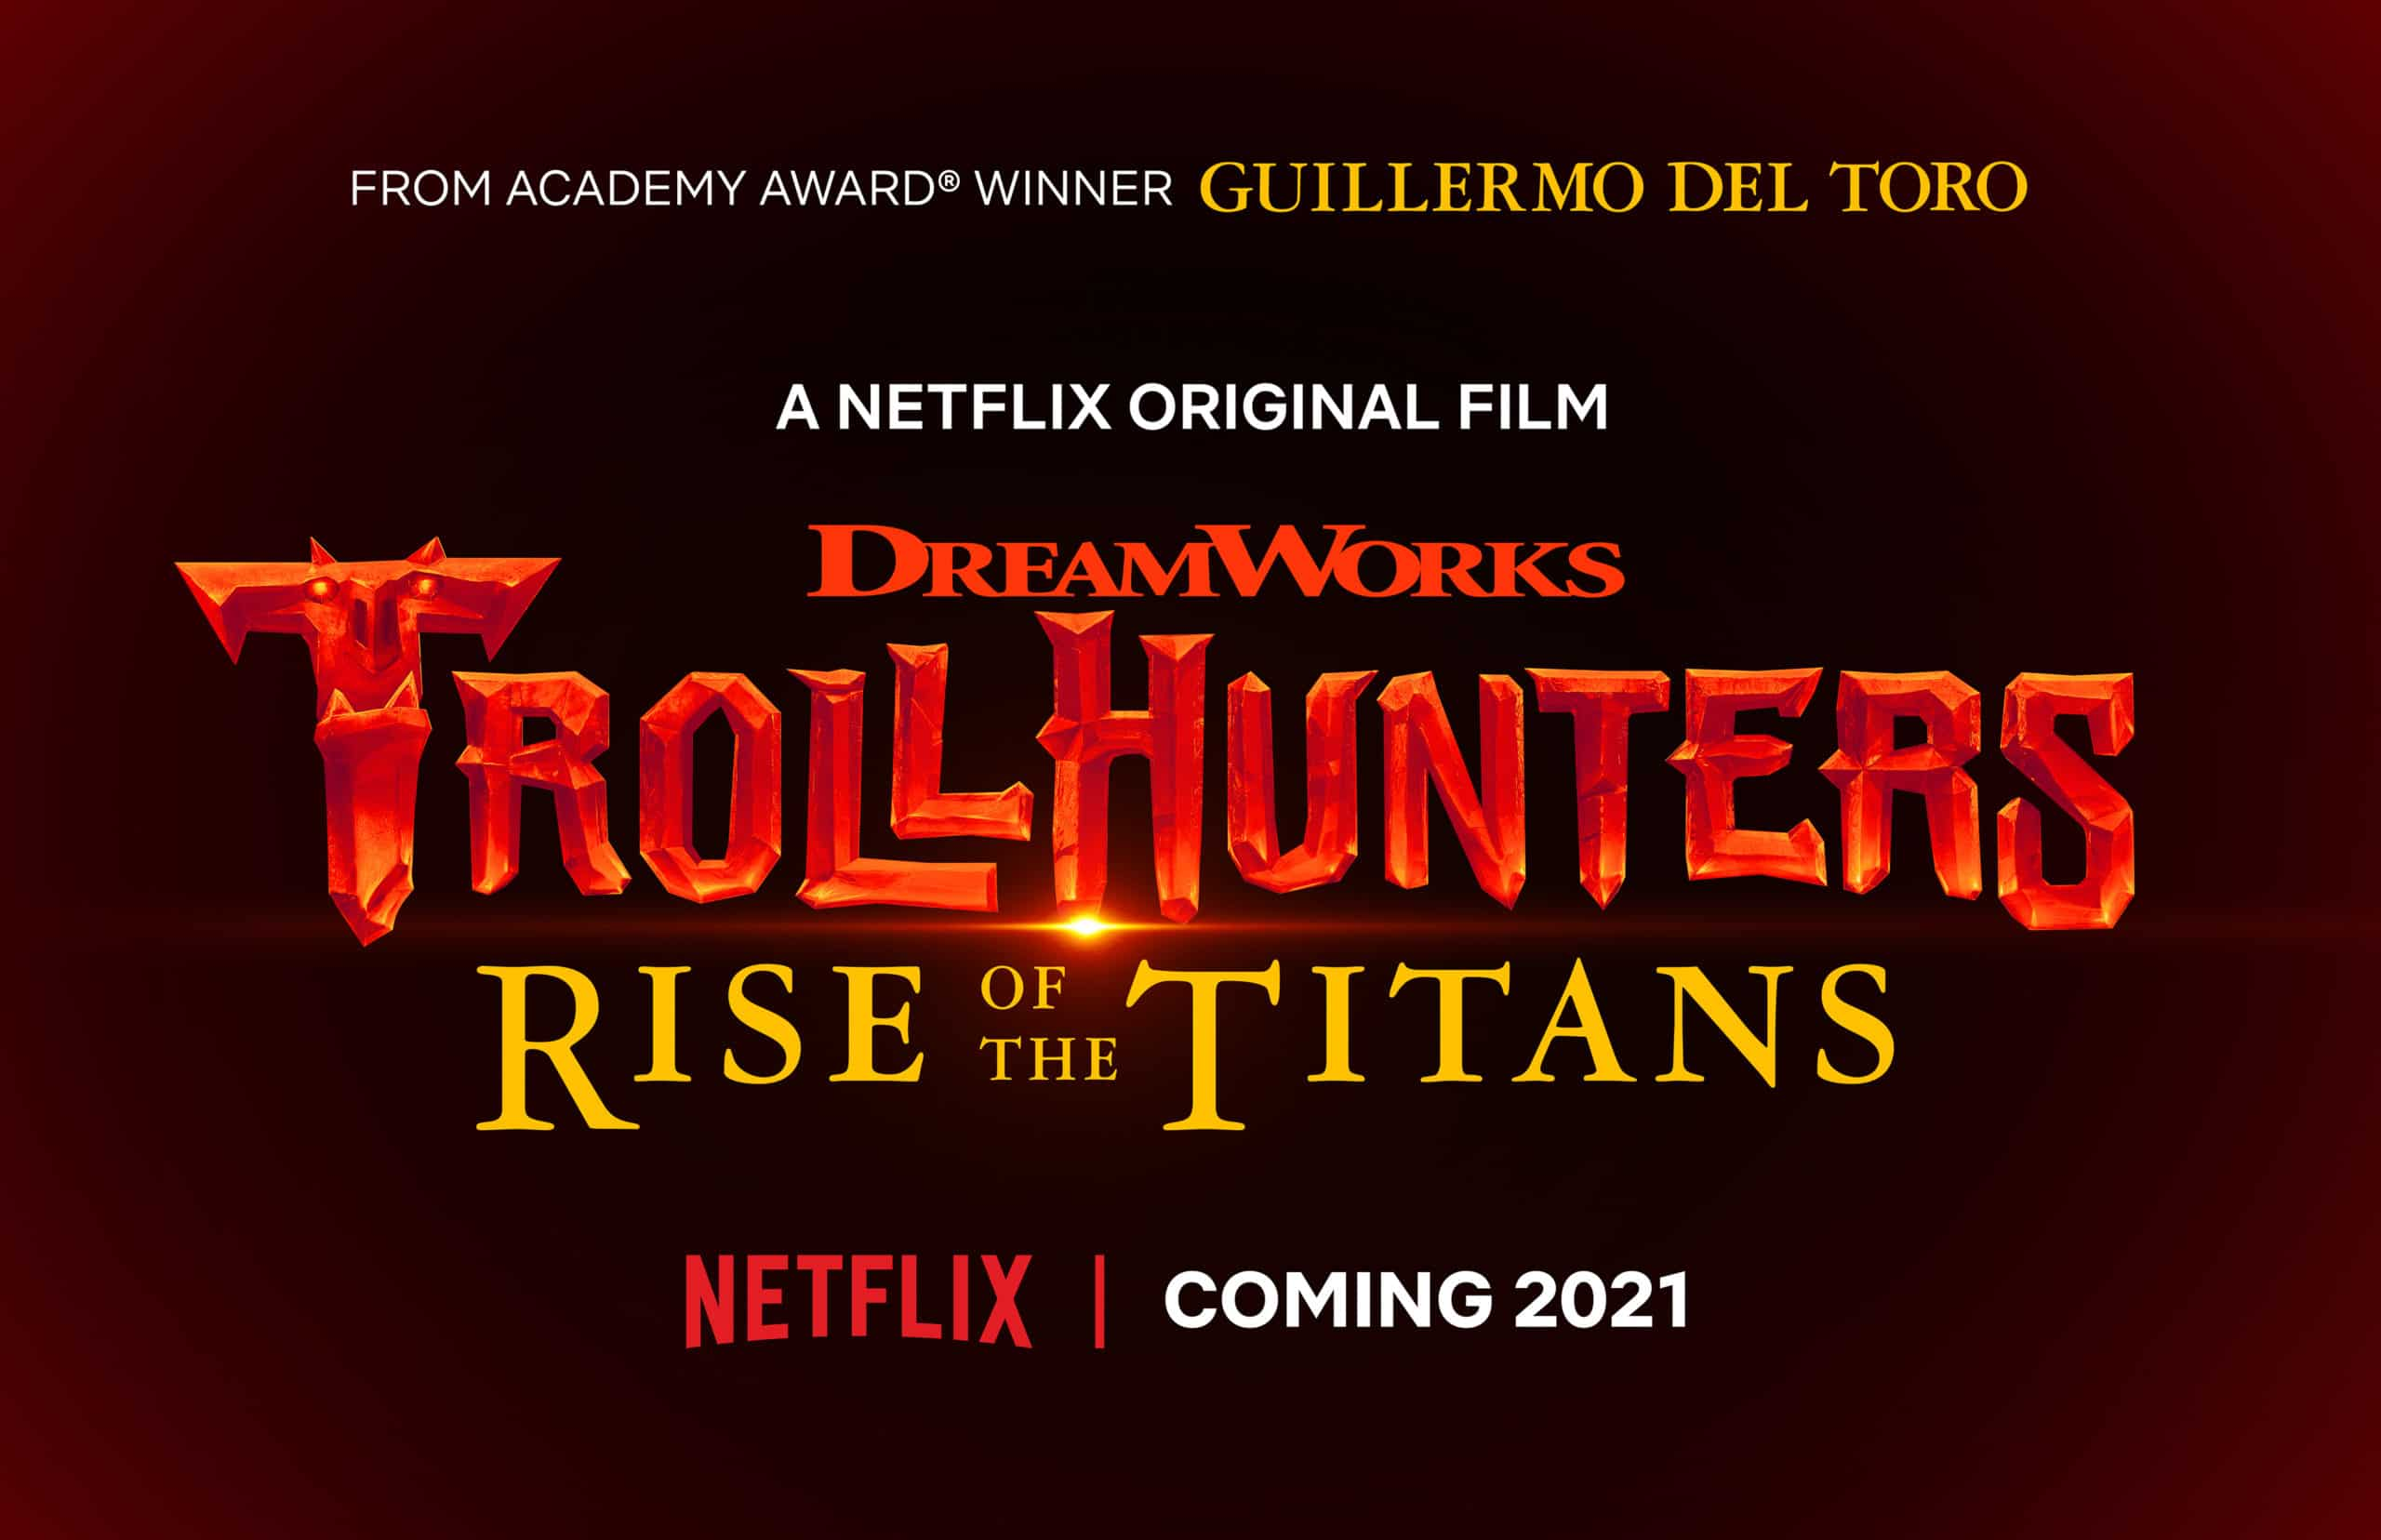 GUILLERMO DEL TORO'S ANIMATED FILM TROLLHUNTERS: RISE OF THE TITANS COMING TO NETFLIX IN 2021 2